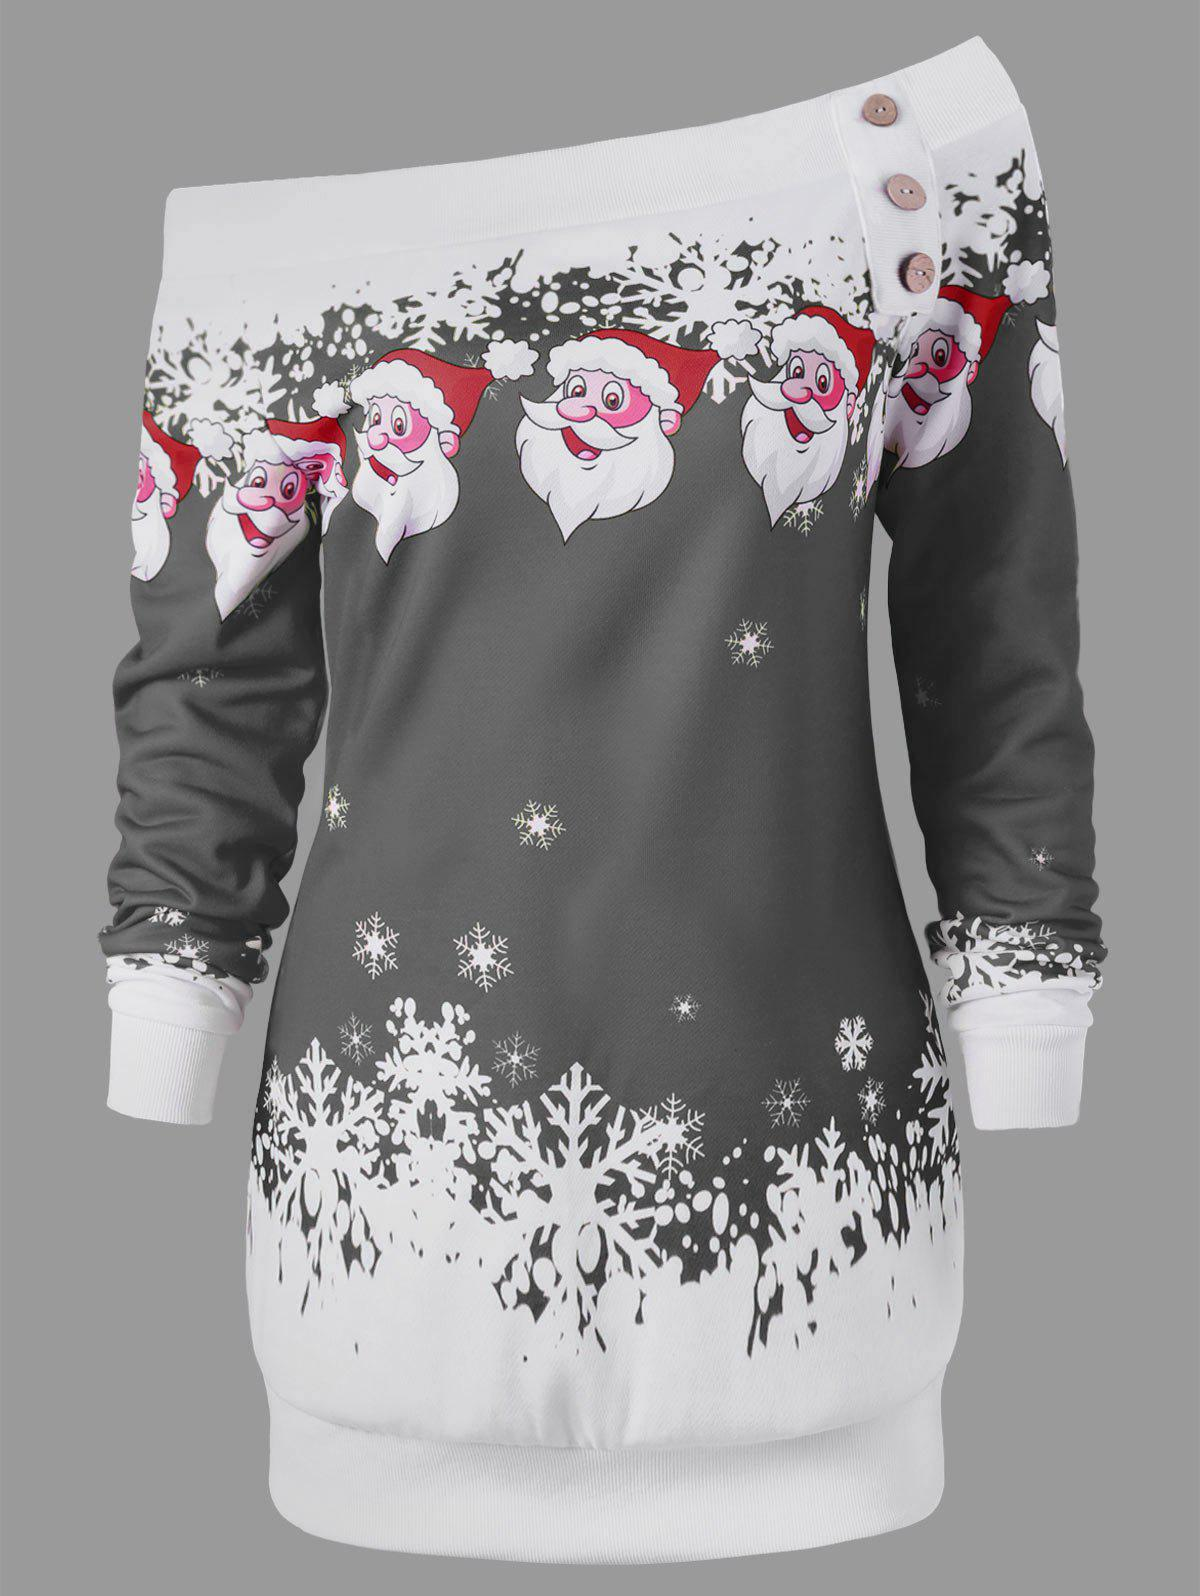 Pullover Santa Claus Snowflake Skew Neck Christmas SweatshirtWOMEN<br><br>Size: 2XL; Color: GRAY; Material: Polyester,Spandex; Shirt Length: Long; Sleeve Length: Full; Style: Casual; Pattern Style: Character; Embellishment: Button; Season: Fall,Spring,Winter; Weight: 0.3000kg; Package Contents: 1 x Sweatshirt;